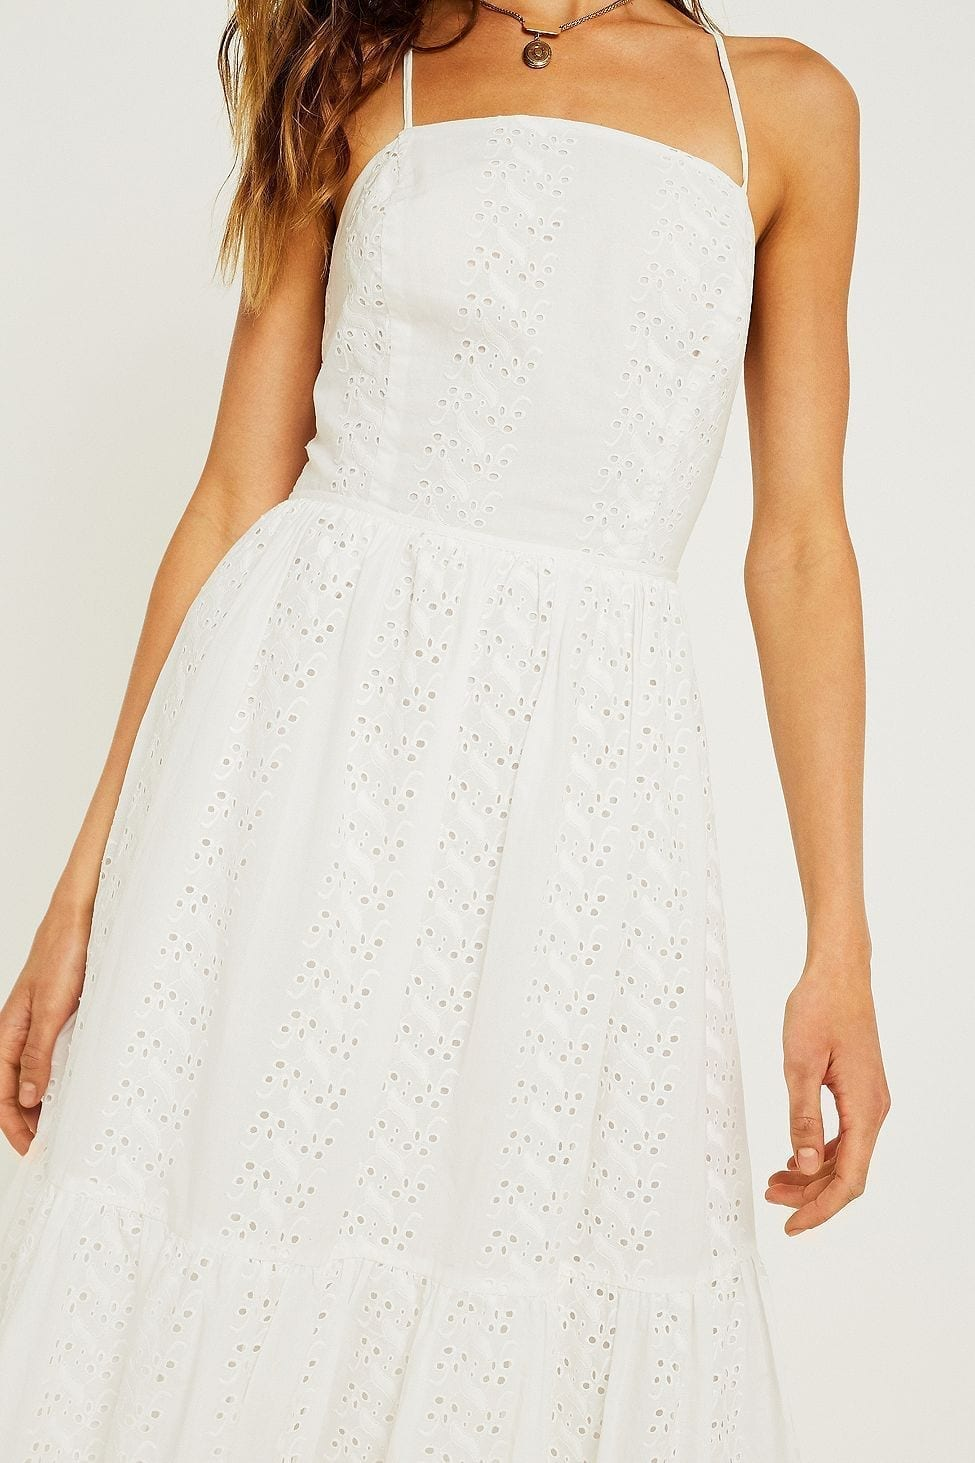 Urban Outfitters Sparks Fly Tiered Midi White Dress We